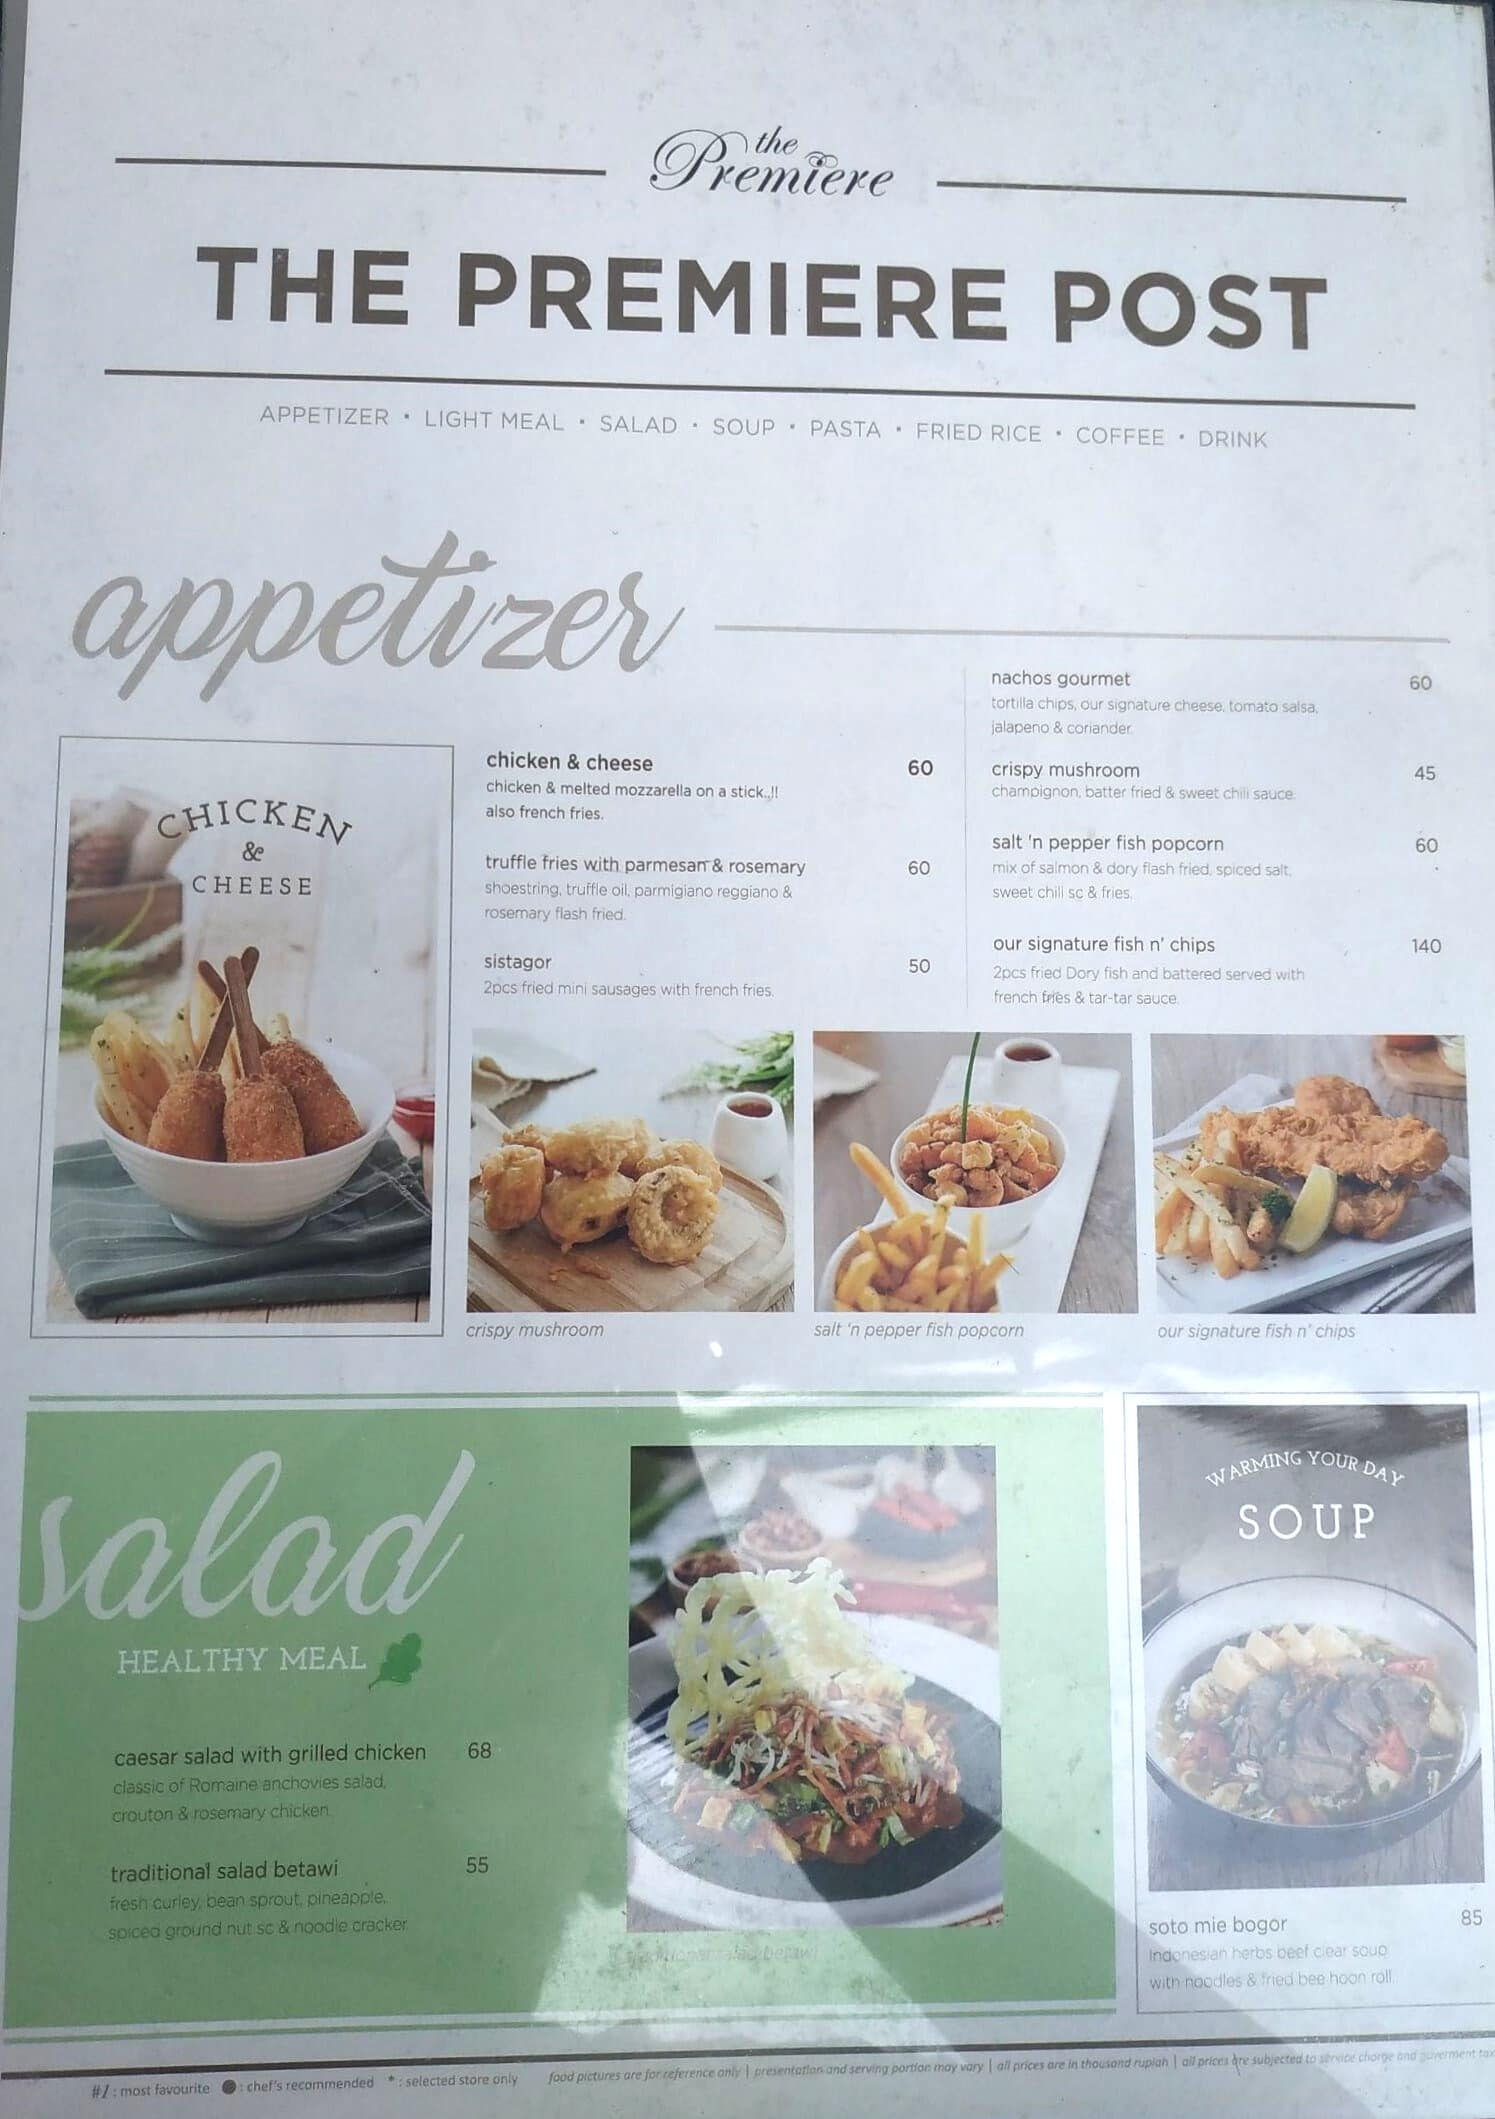 Garden Cafe Xxi Bintaro Plaza Menu Zomato Indonesia